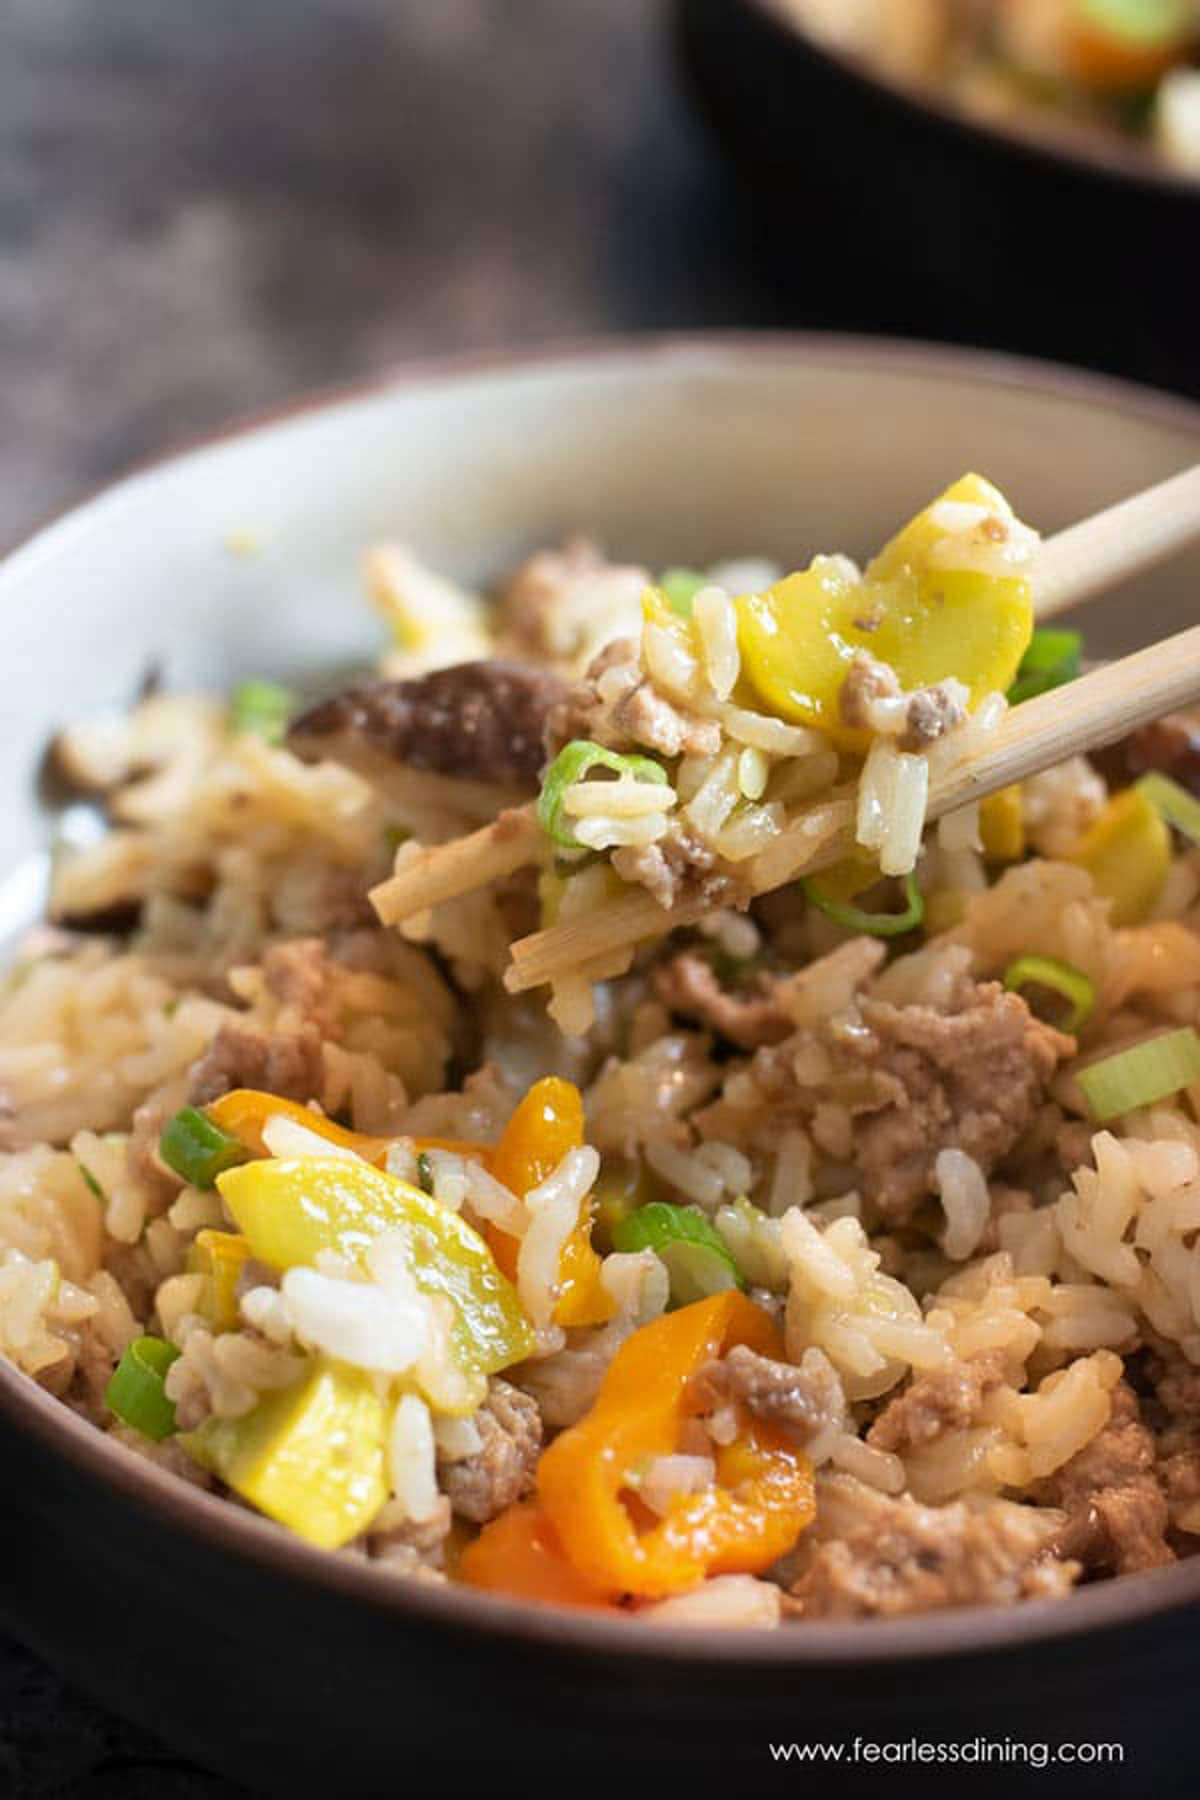 holding up some of the fried rice between chopsticks